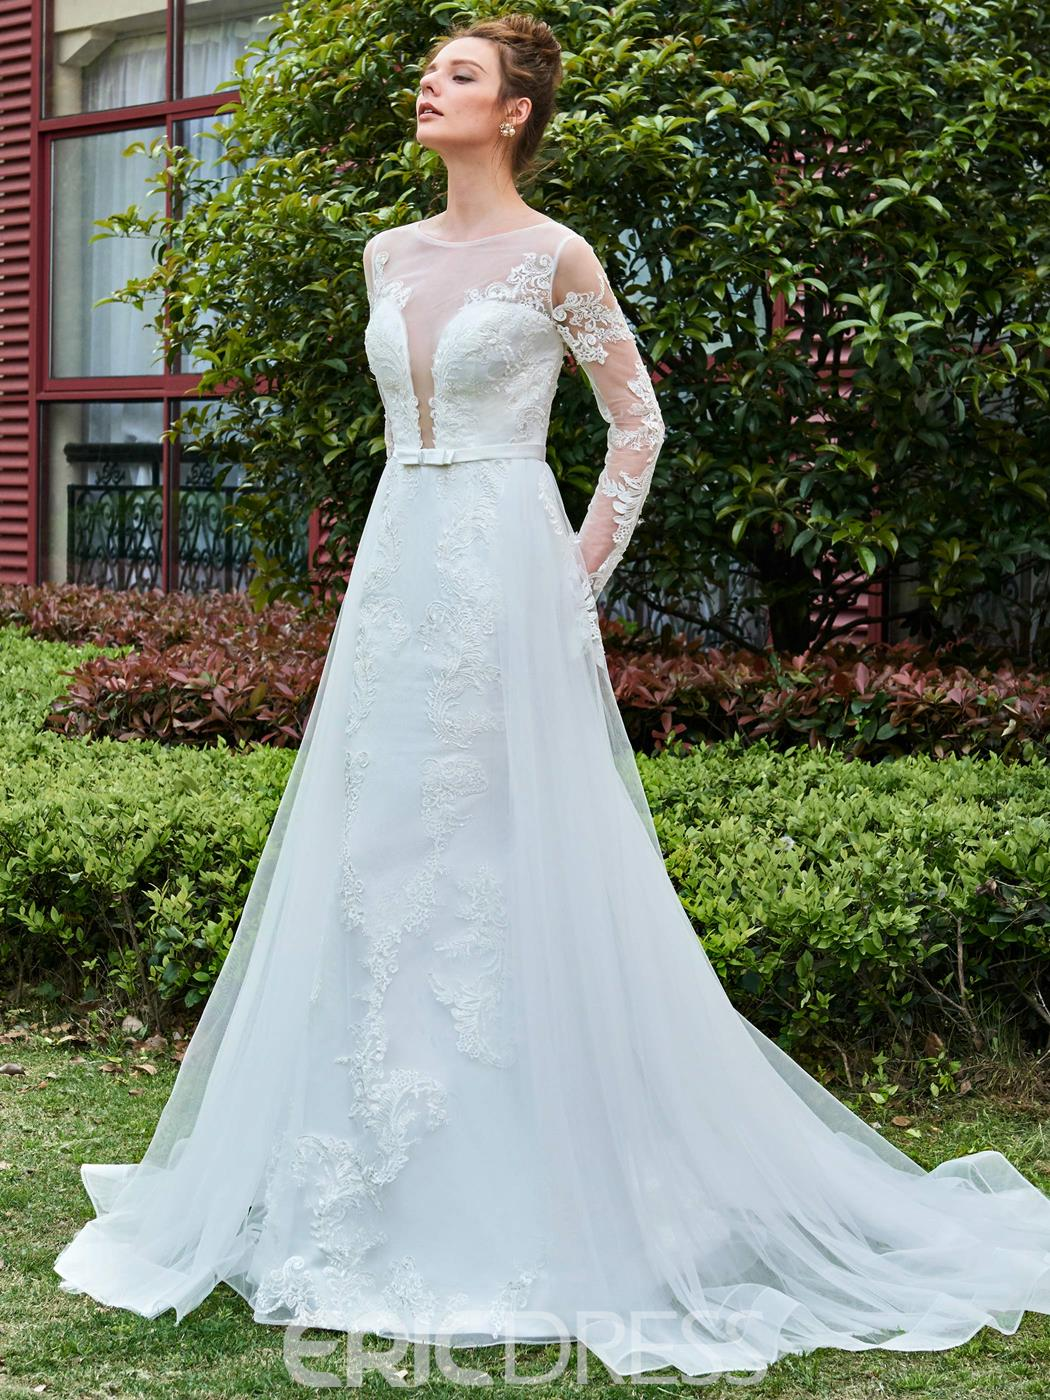 Ericdress Sexy Long Sleeves Applique Tulle Wedding Dress with Train